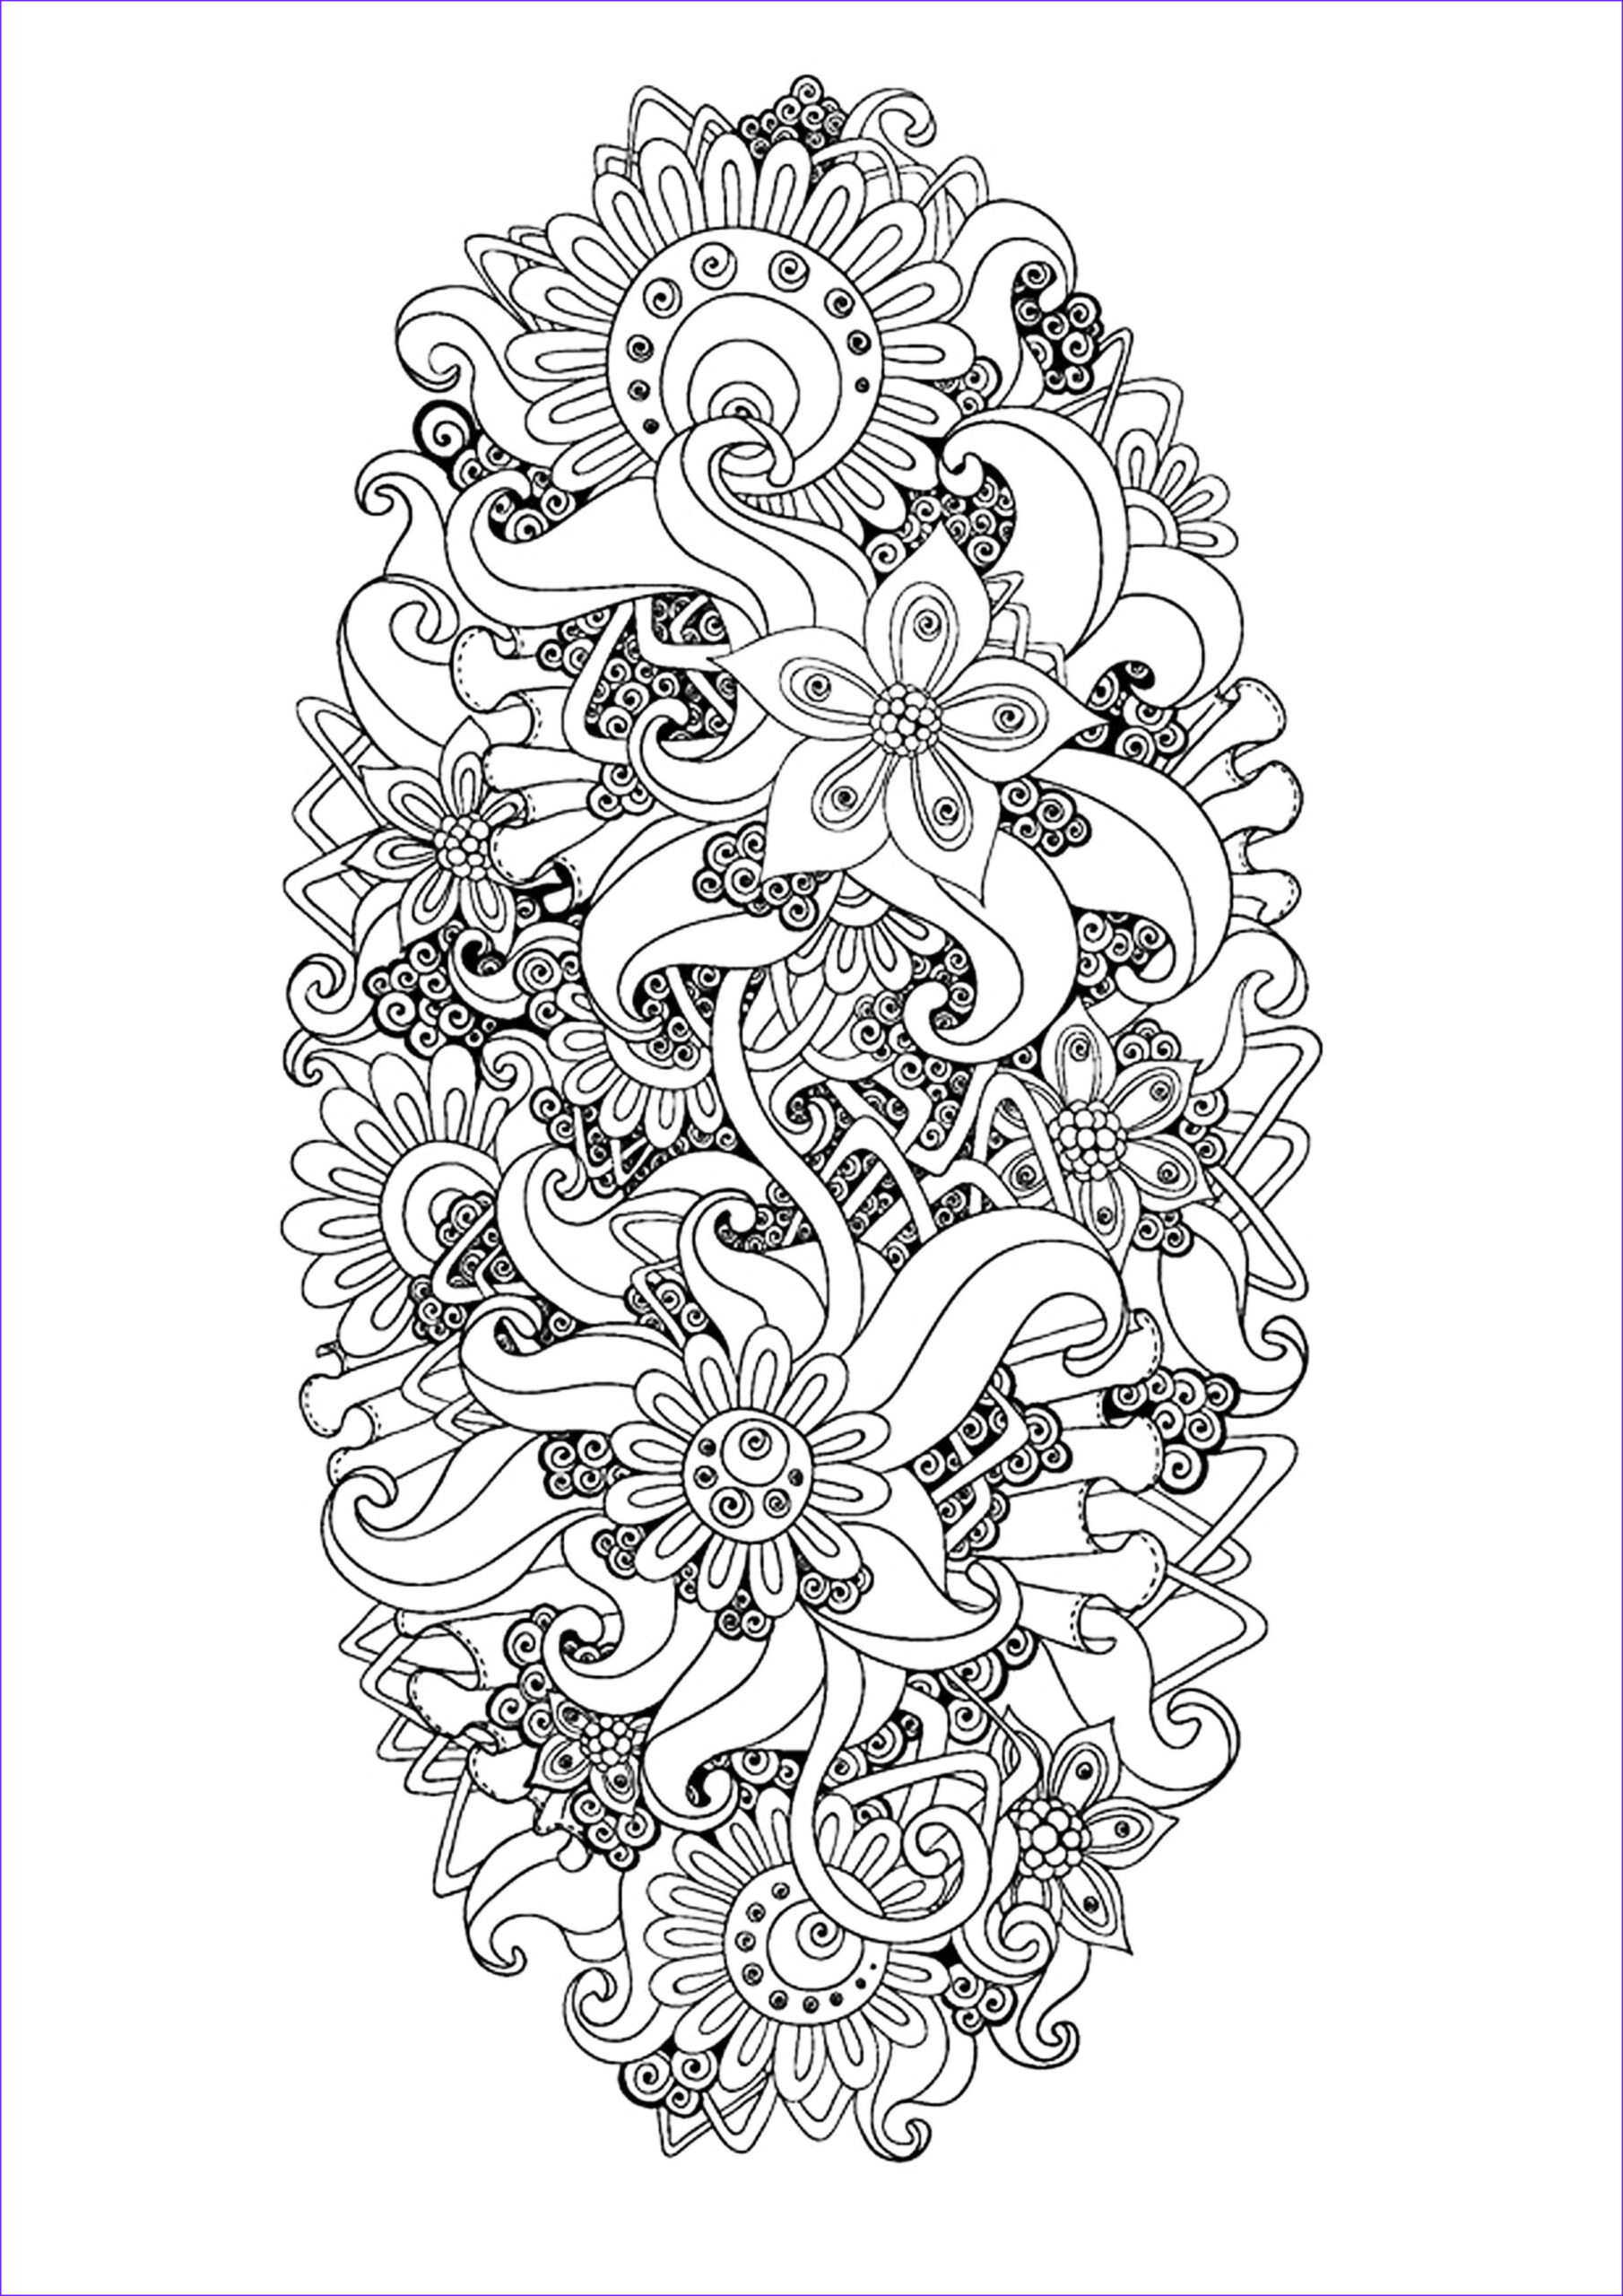 Zen Coloring Beautiful Images Zen & Anti Stress Coloring Page Abstract Pattern